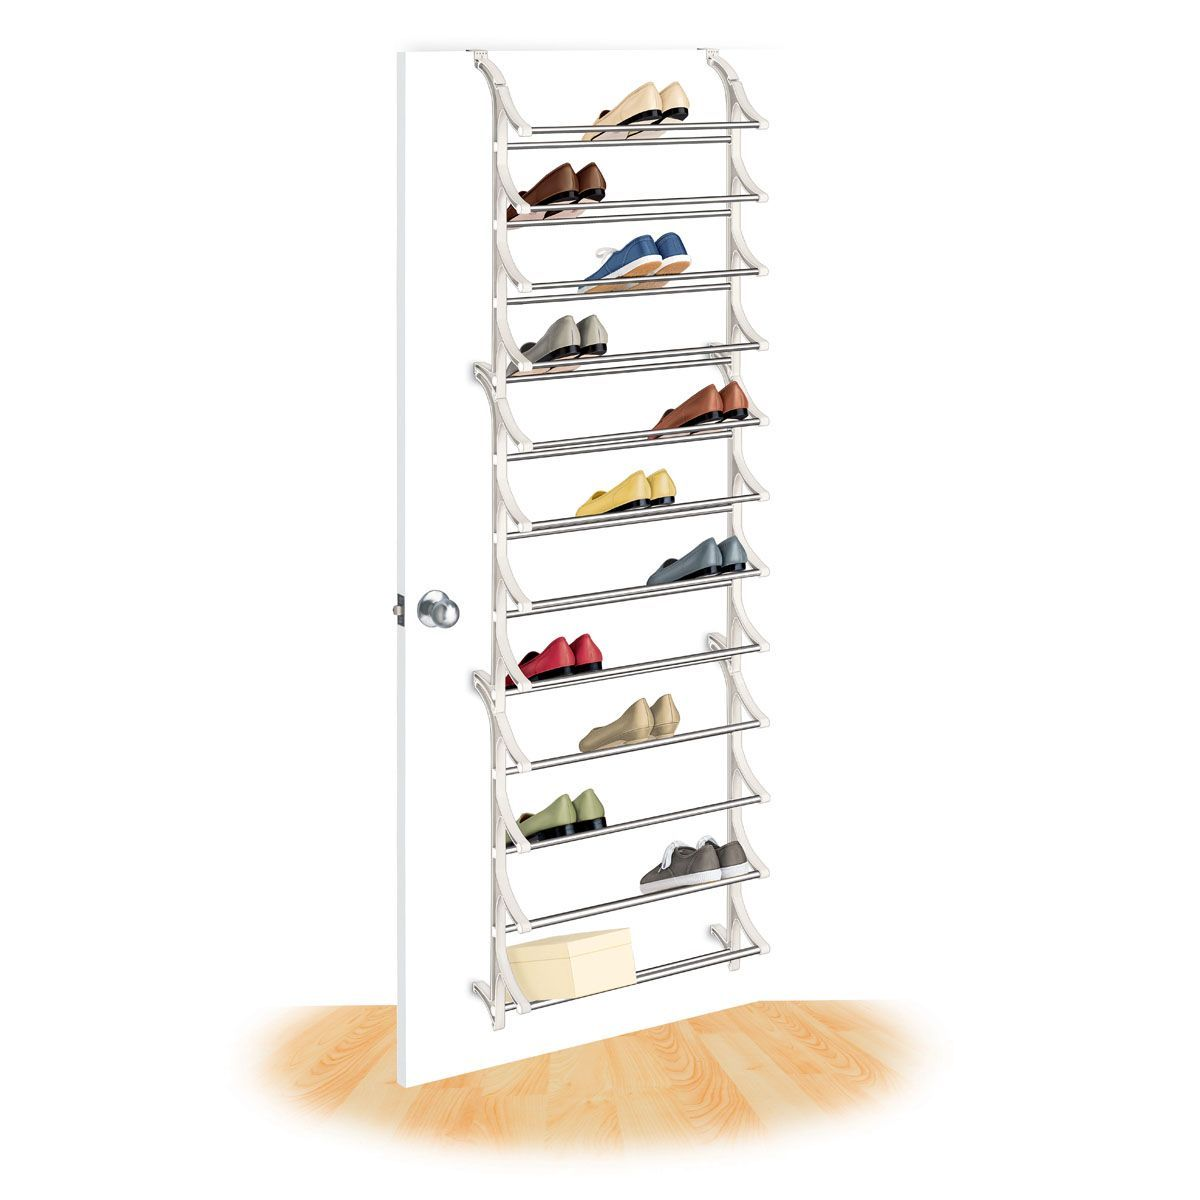 This Strong Steel And Polymer Shoe Rack Holds 36 Pairs Of Shoes Or 36  Shoeboxes.